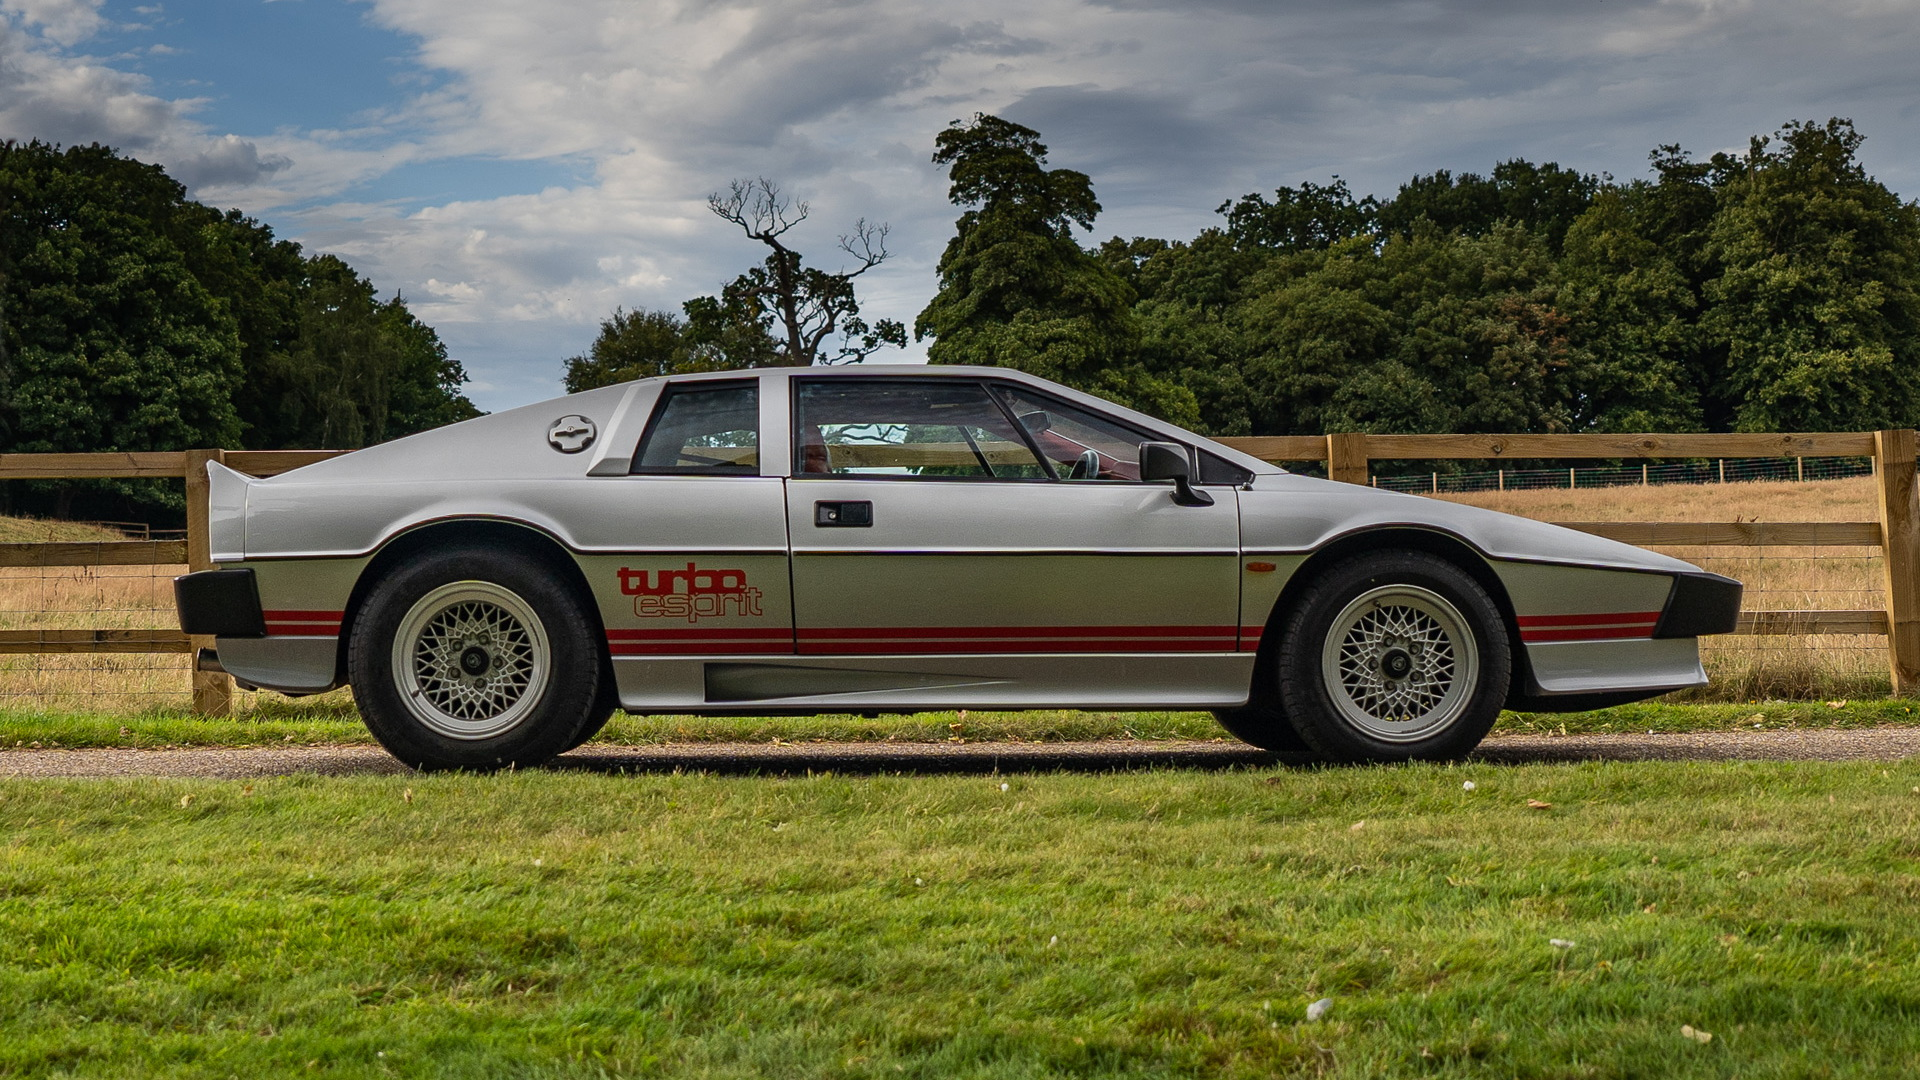 1981 Lotus Turbo Esprit once owned by Colin Chapman